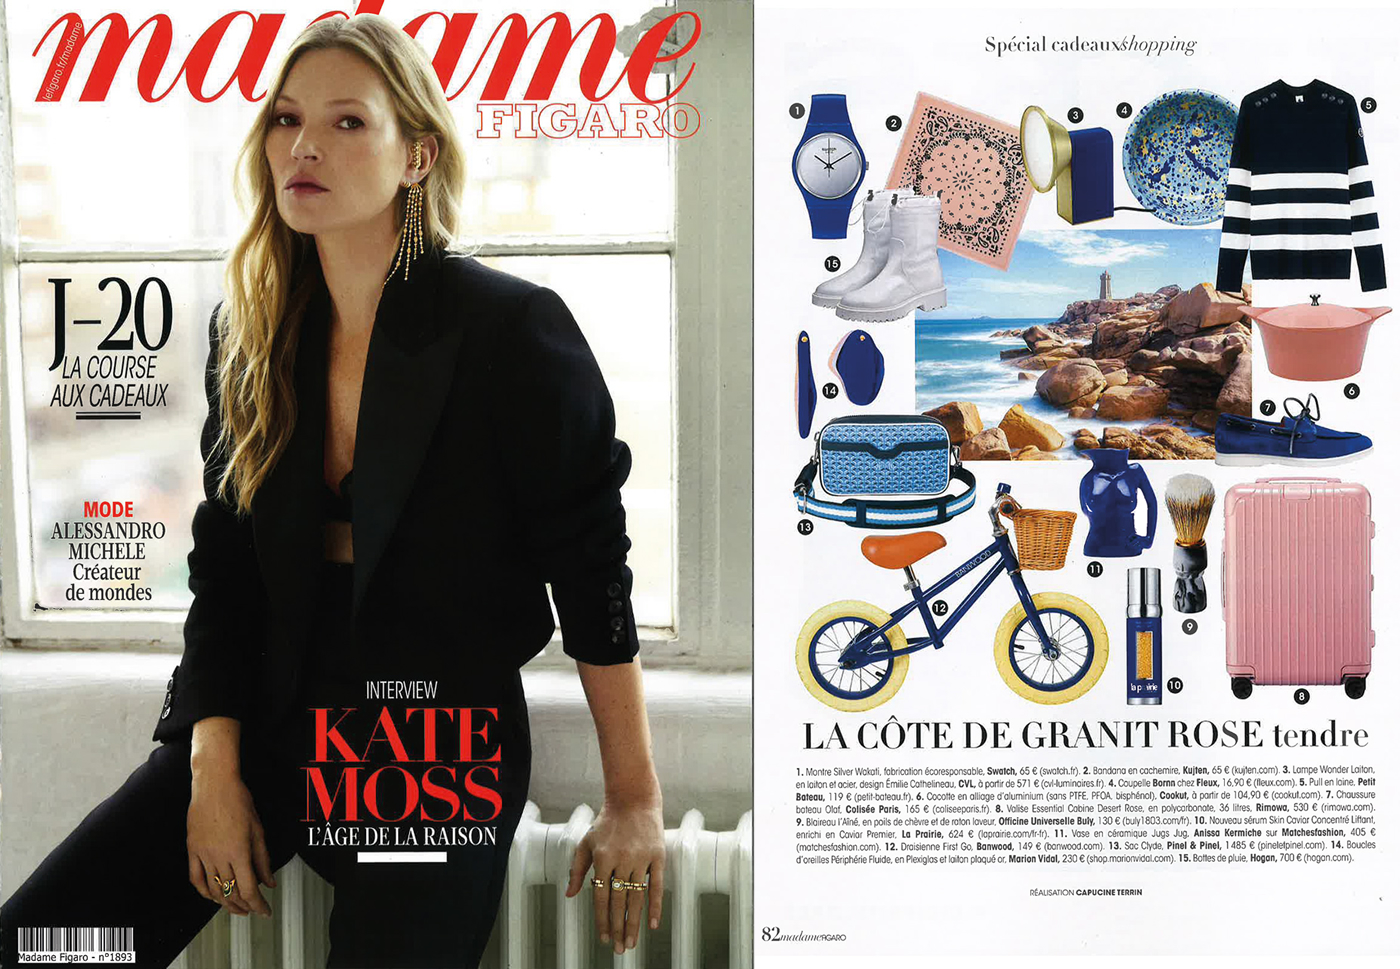 PINEL et PINEL in Madame Figaro - 2020/12